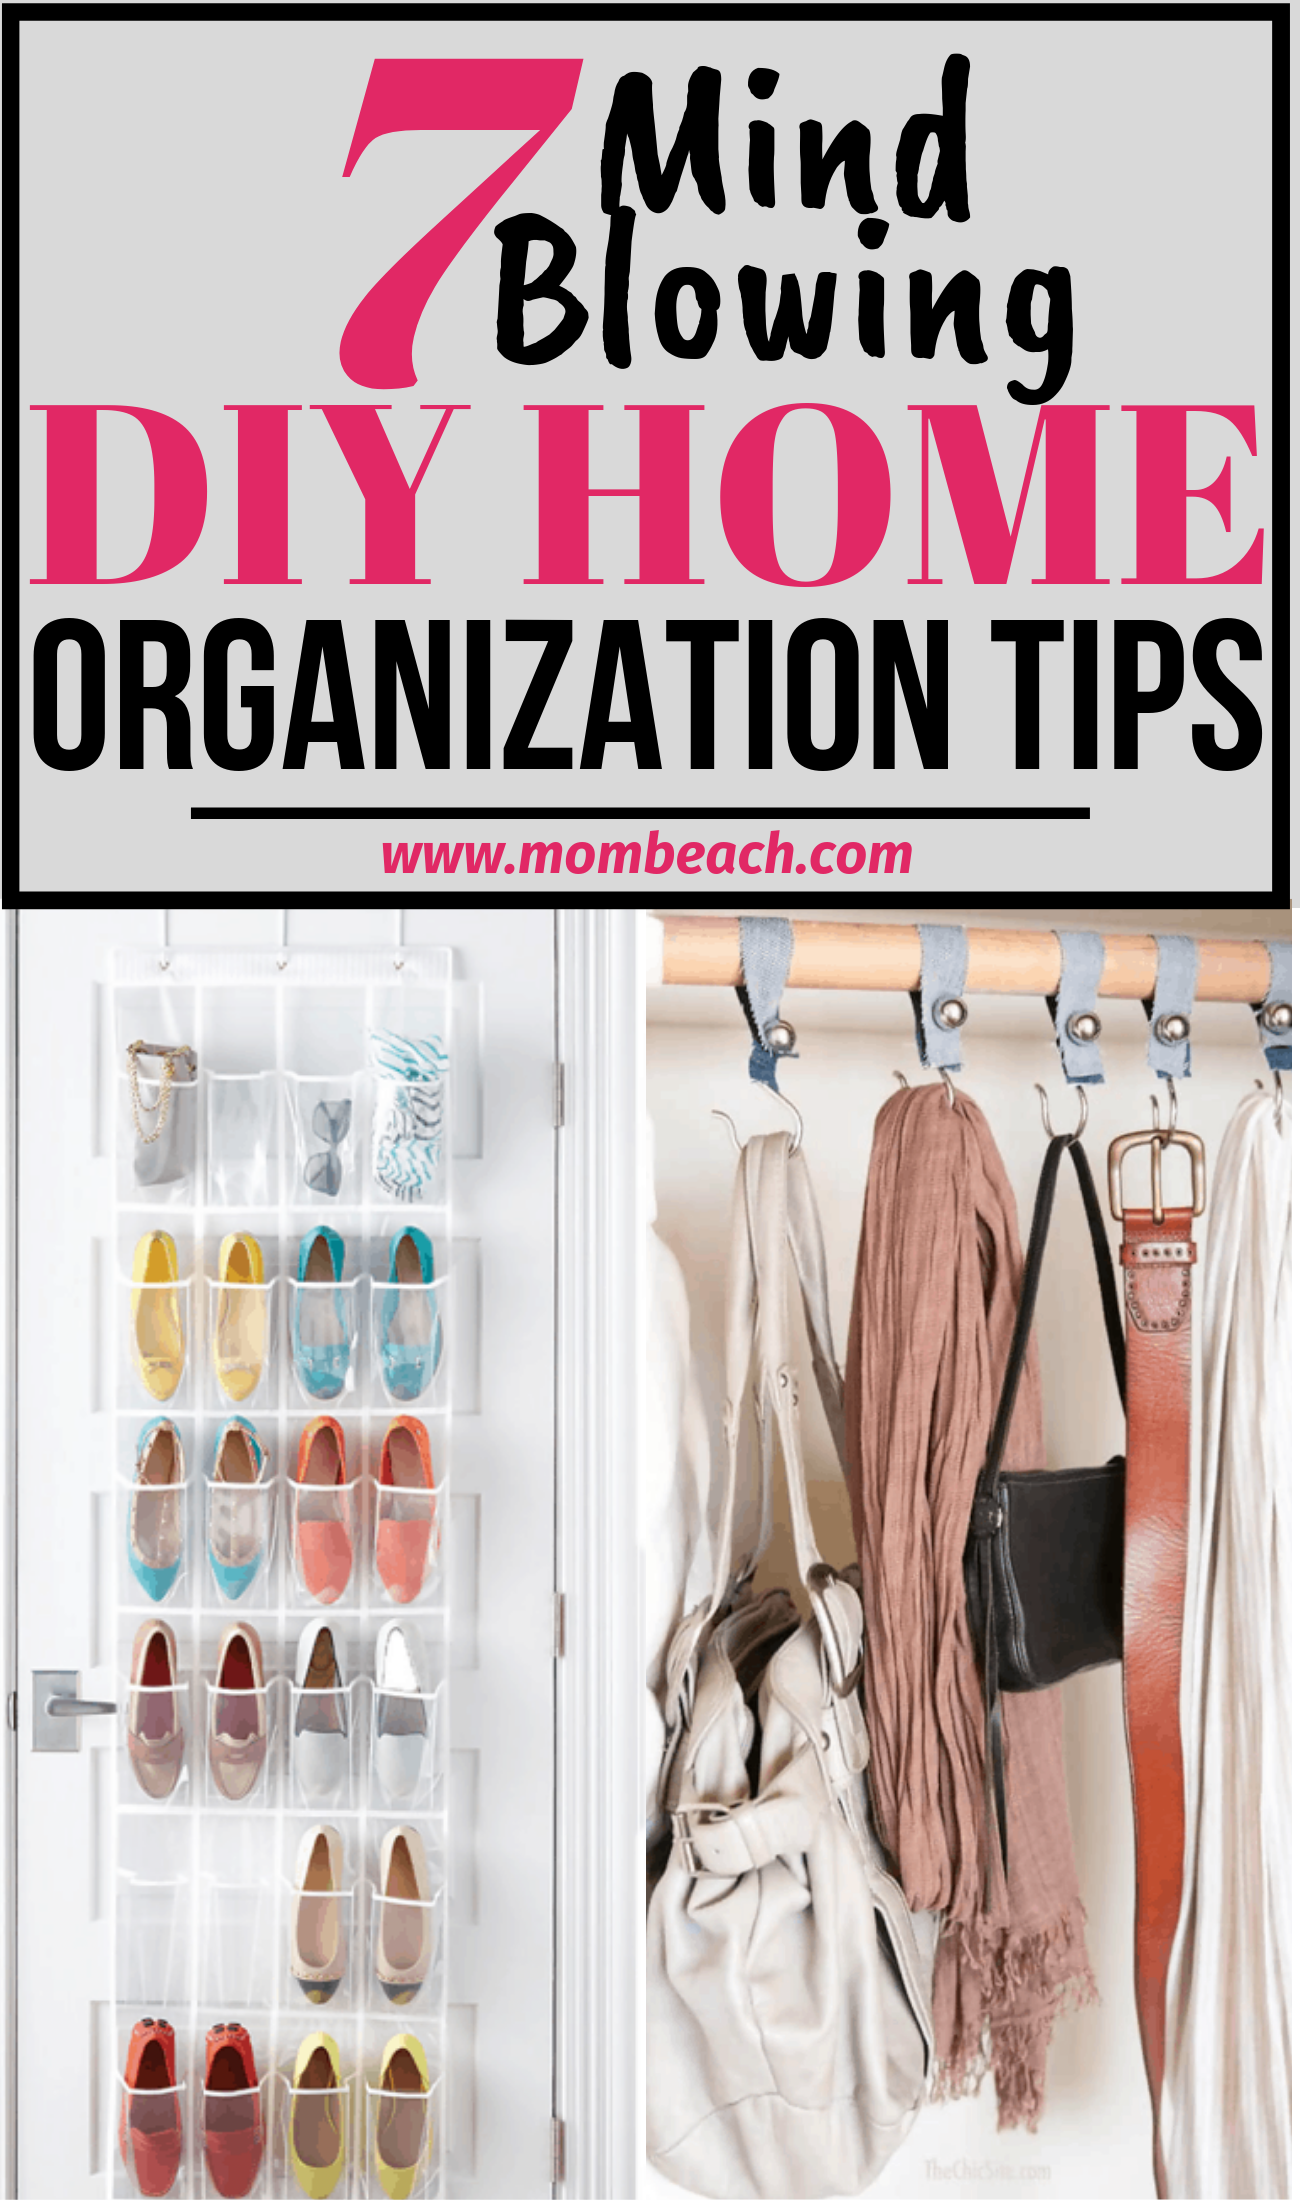 Save money by DIY instead of spend hundreds at the Container Store. There are so many dollar store organization ideas that you will be shook! There are DIY organization ideas for the bedroom, for small spaces, for teens, bathrooms, the kitchen and the closet. There are even hacks for the apartment too. #diyorganization #diyorganizationideas #diyorganizationhacks #diyorganizationforsmallspaces #diyorganizationdollarstore